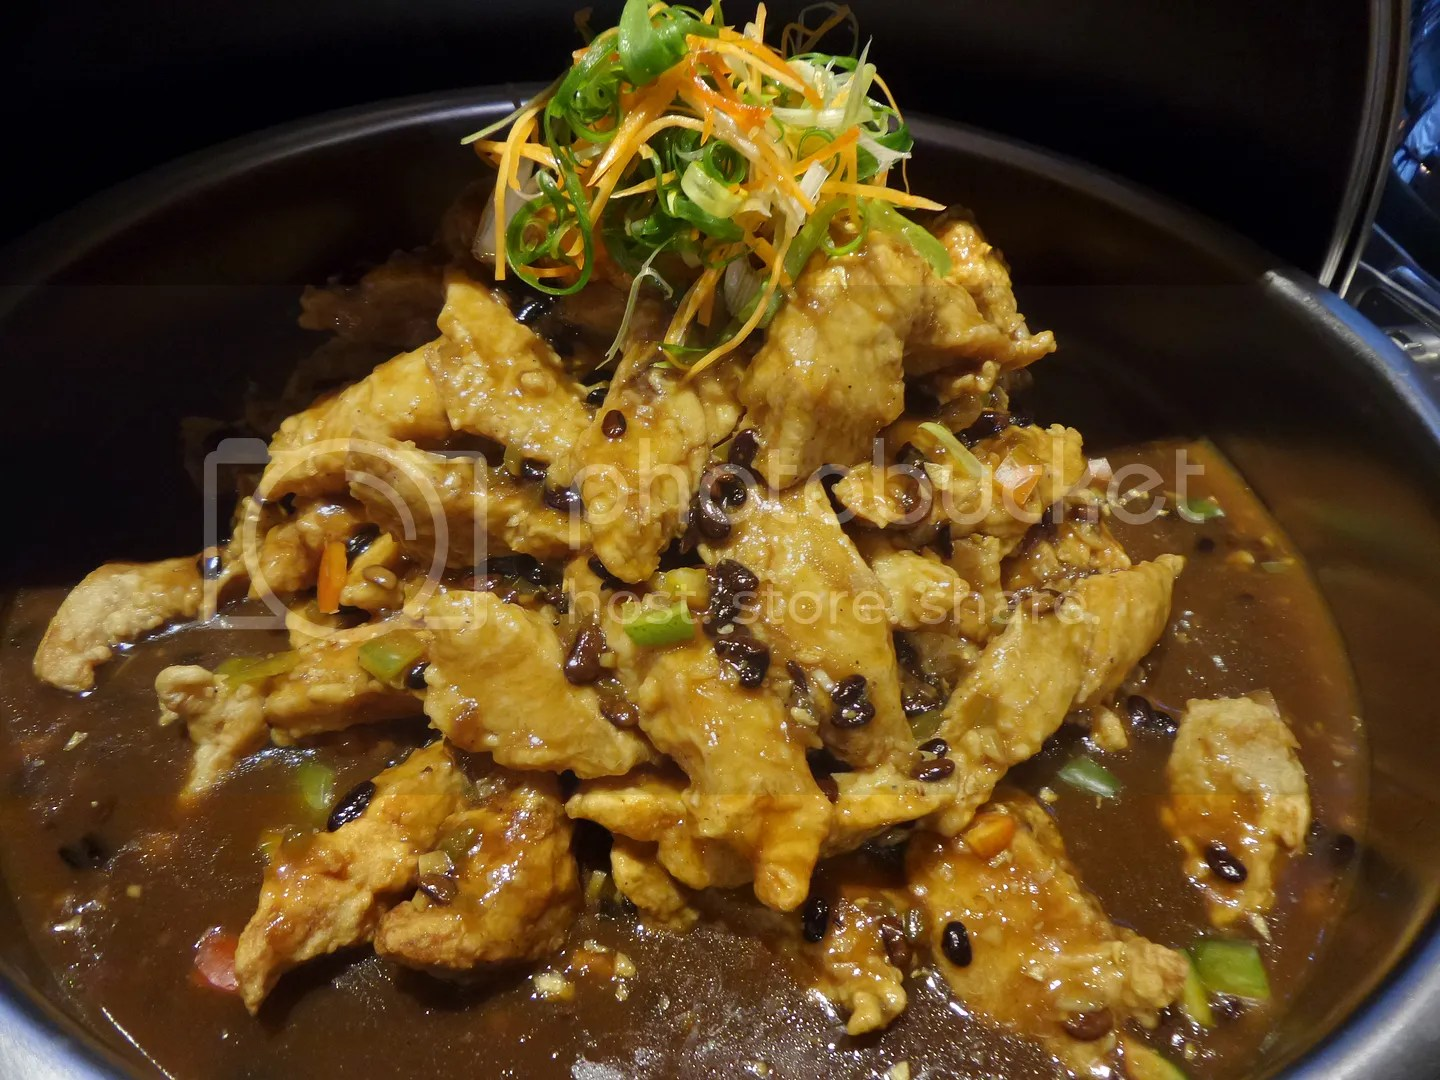 Parrotfish fillet with ginger tausi sauce.